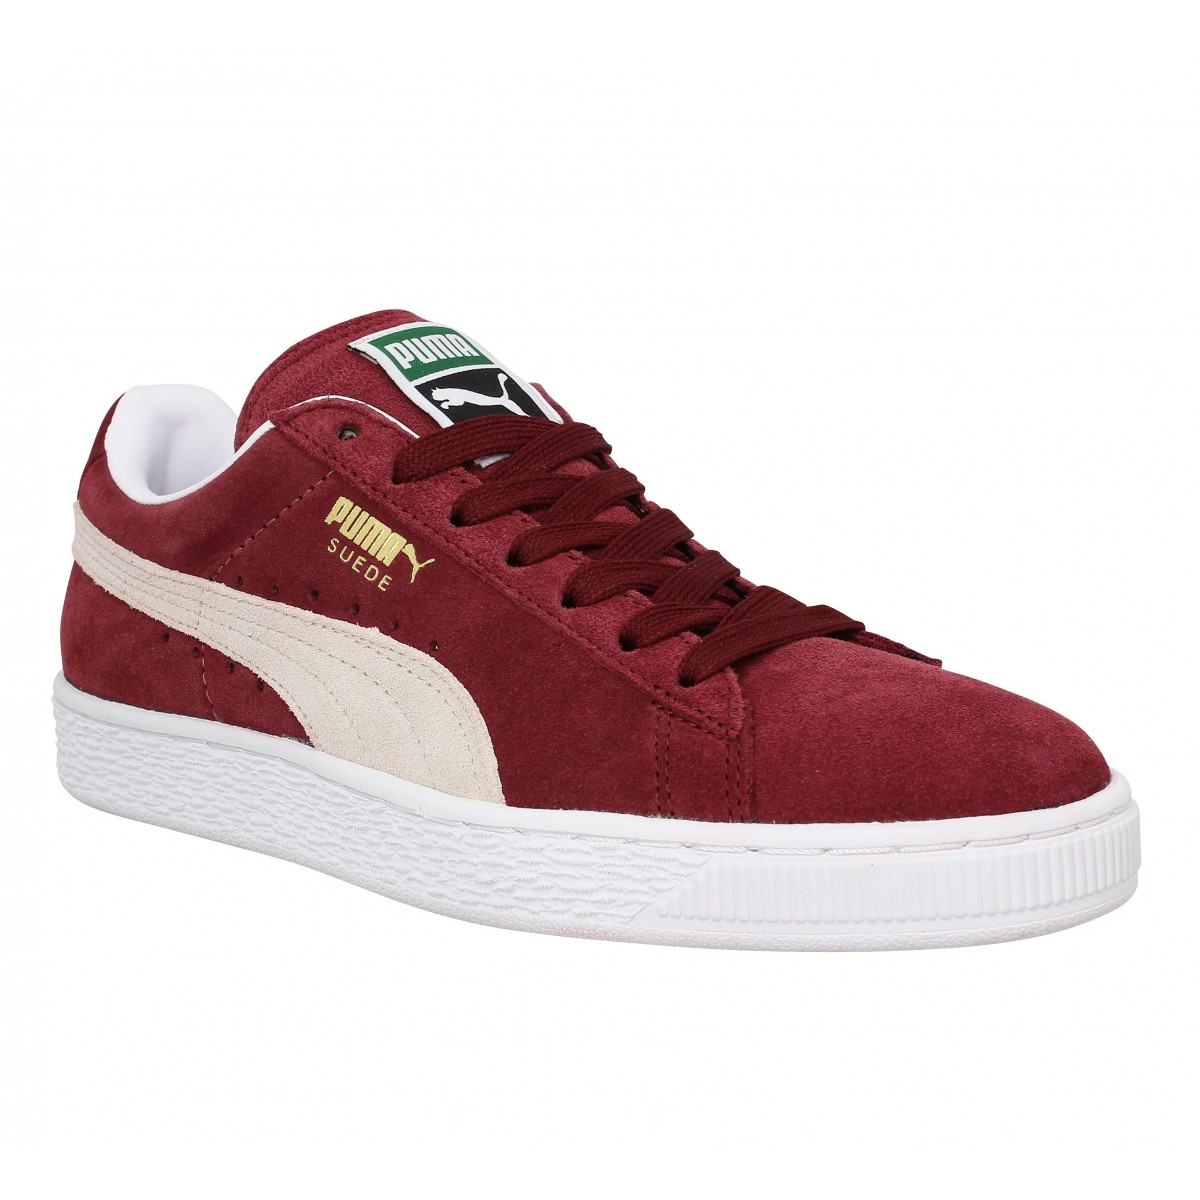 puma suede classic velours femme bordeaux fanny chaussures. Black Bedroom Furniture Sets. Home Design Ideas